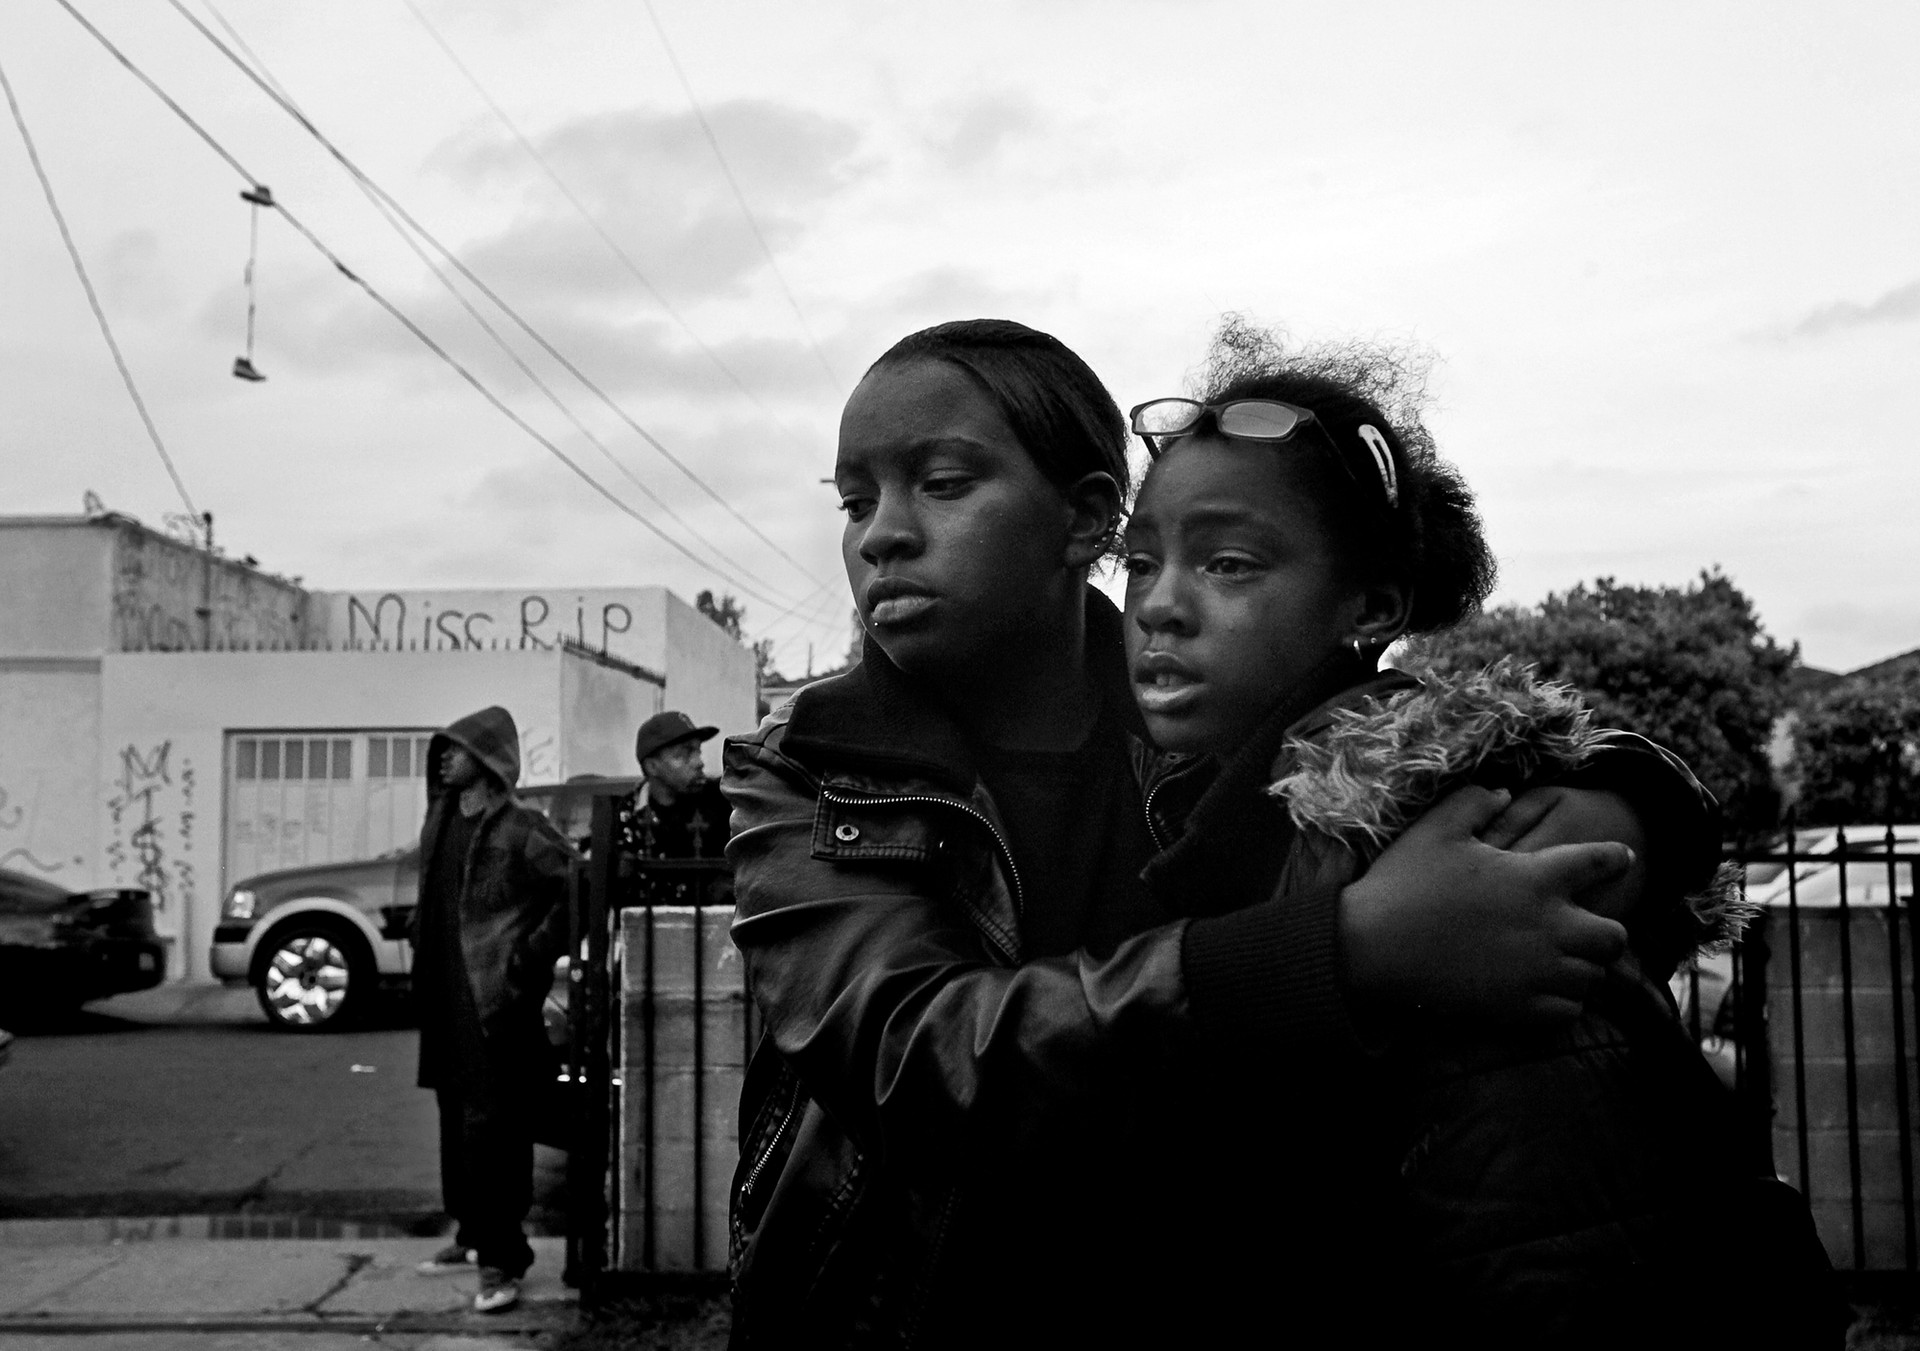 Two friends, Keyshae, left, and Ahvriel, embrace in front of the home where 21-year-old Miss Welch was shot and killed in Compton, CA.  Welch had been sitting on the porch with several friends when a gang member approached from the street and opened fire. Welch was struck in the chest, staggered into the living room and collapsed in her mother's arms. Authorities have confirmed that Welch was not a gang member.